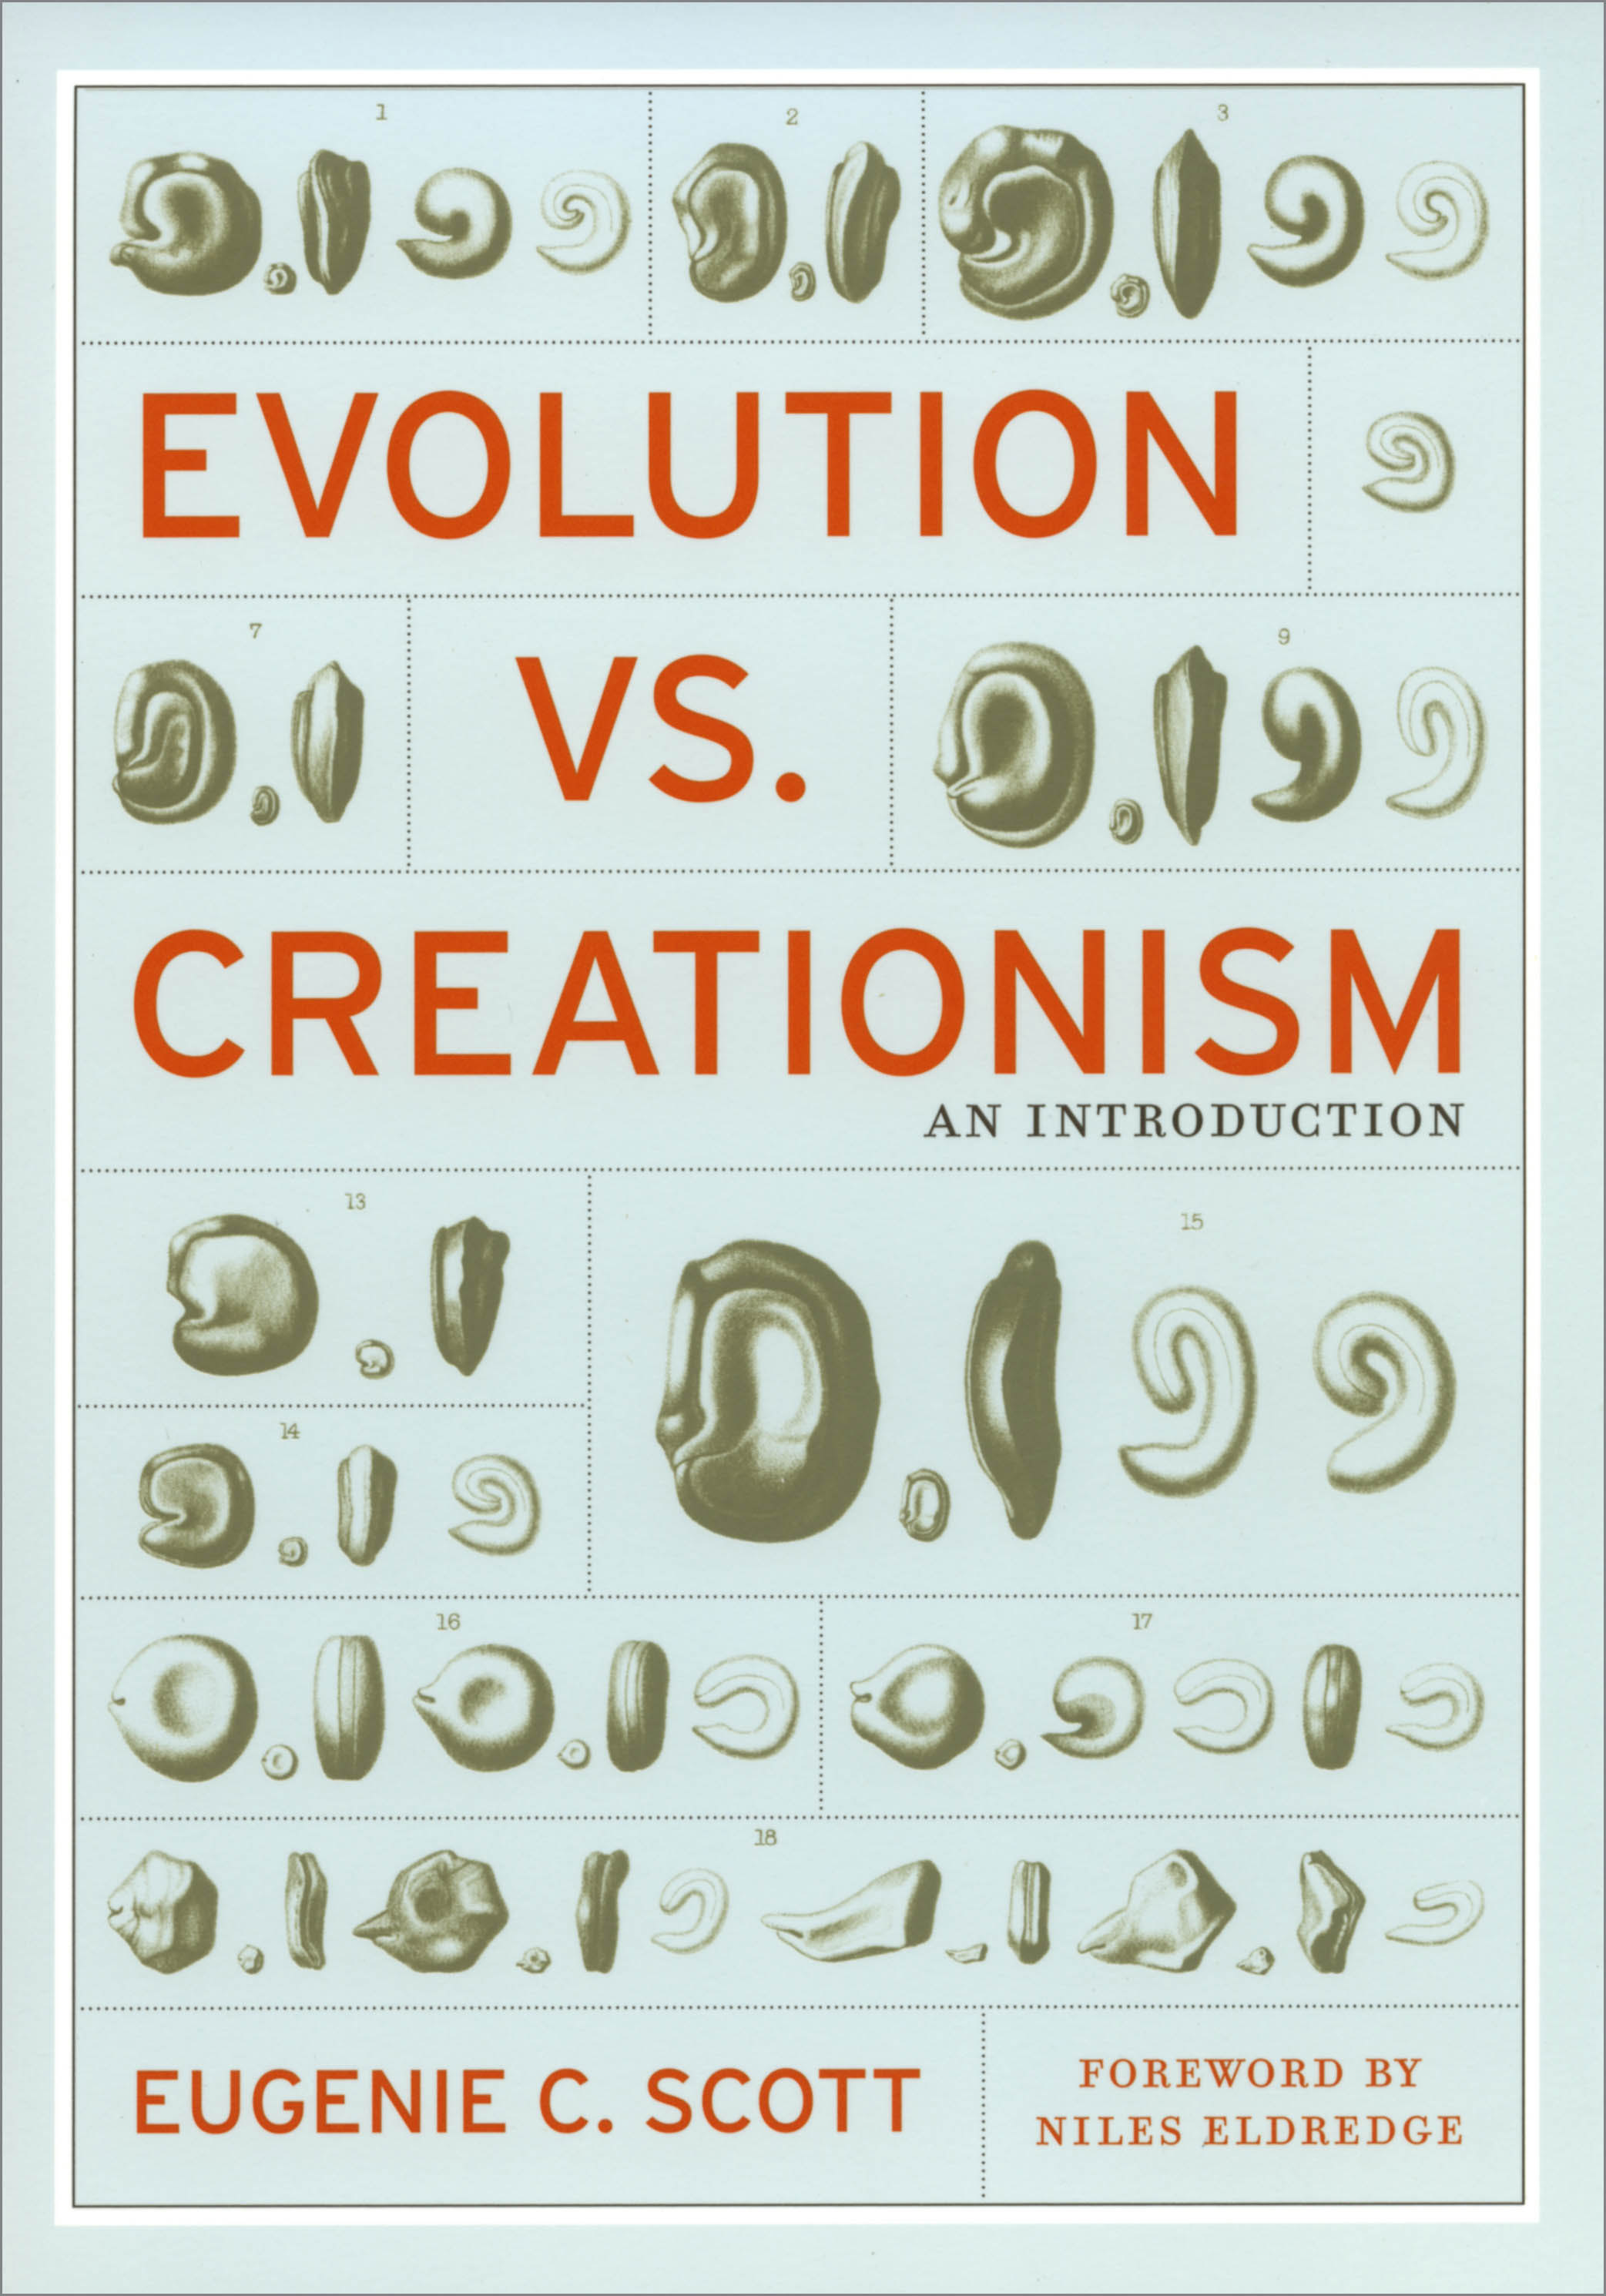 evolution-vs-creationism.jpg